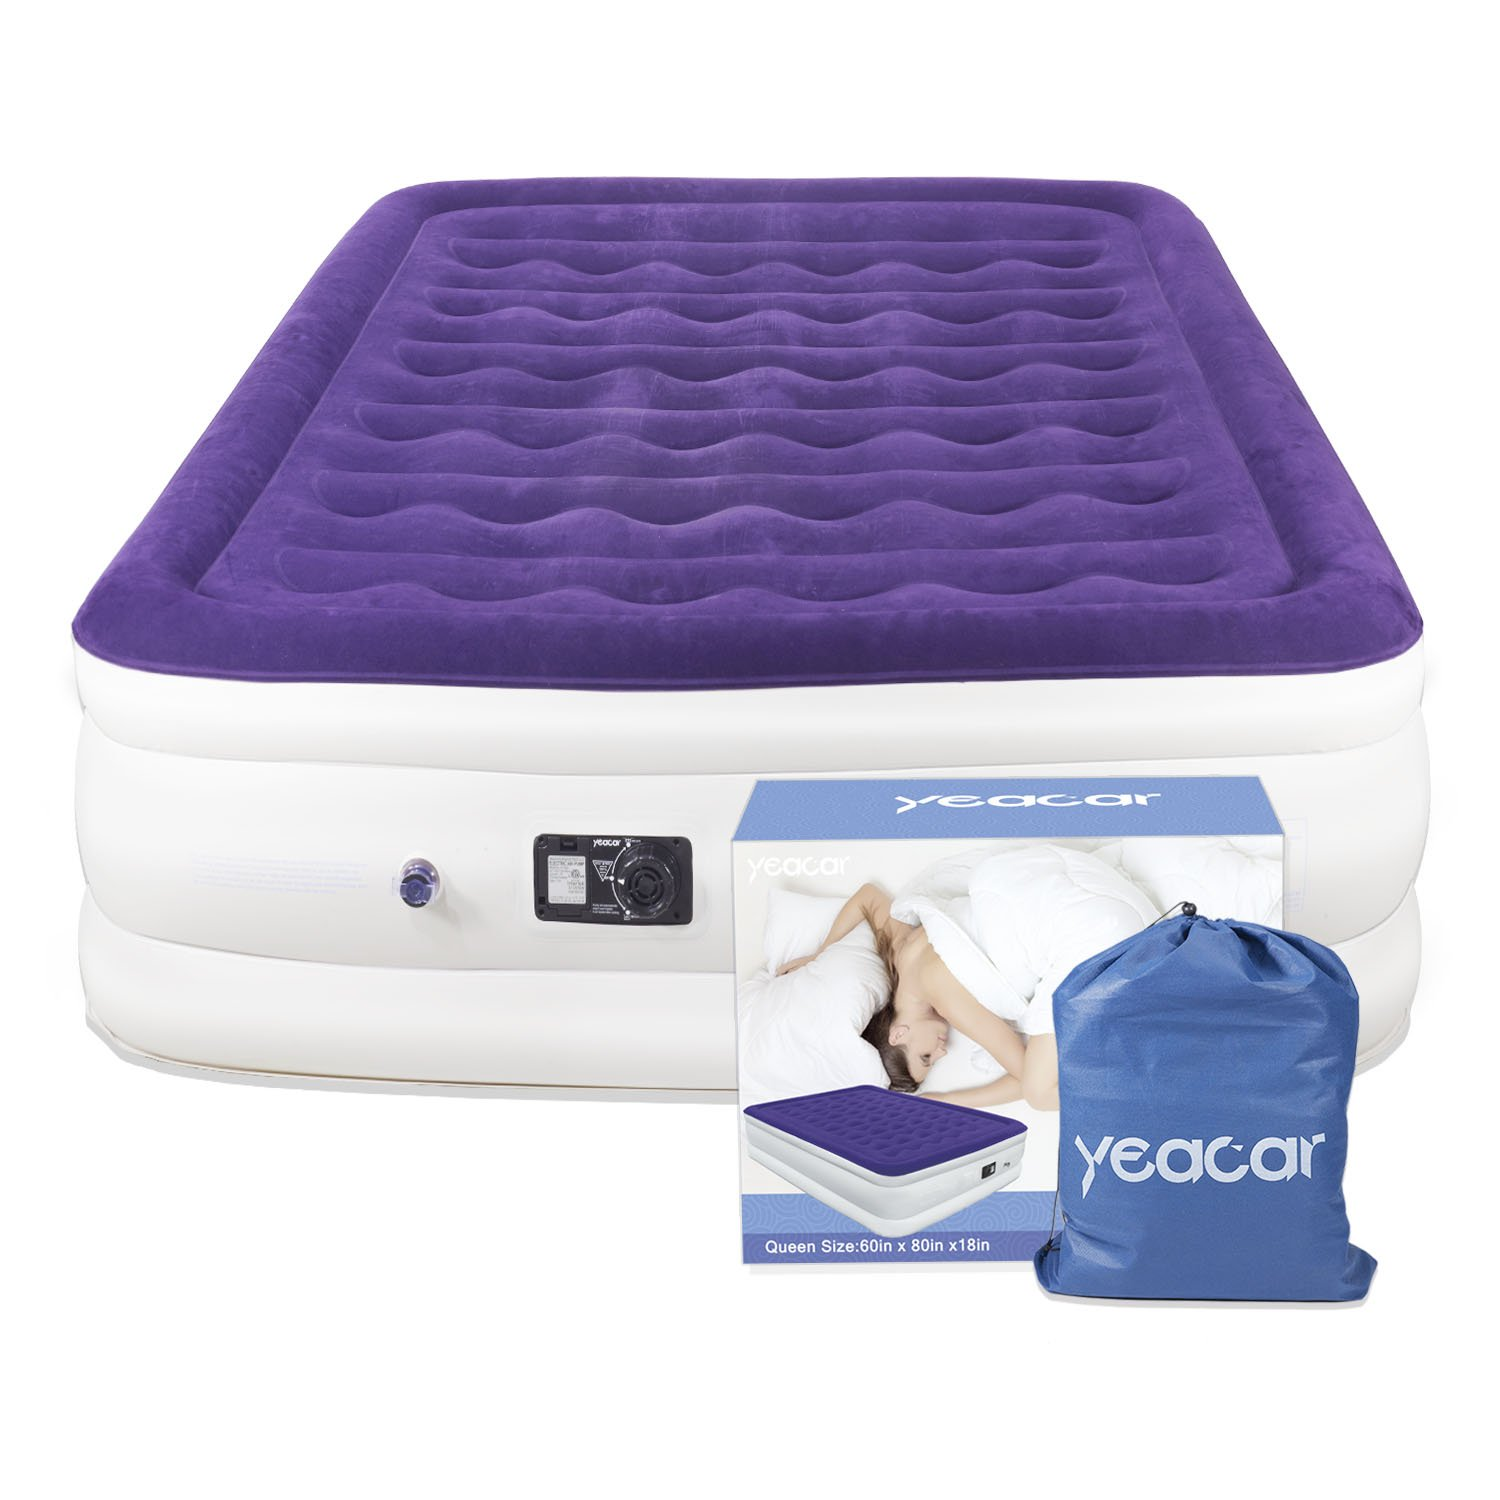 yeacar Air Mattress Blow Up Raised Airbed with Internal High Capacity Pump, Portable Inflatable Bed Queen Size by yeacar (Image #8)